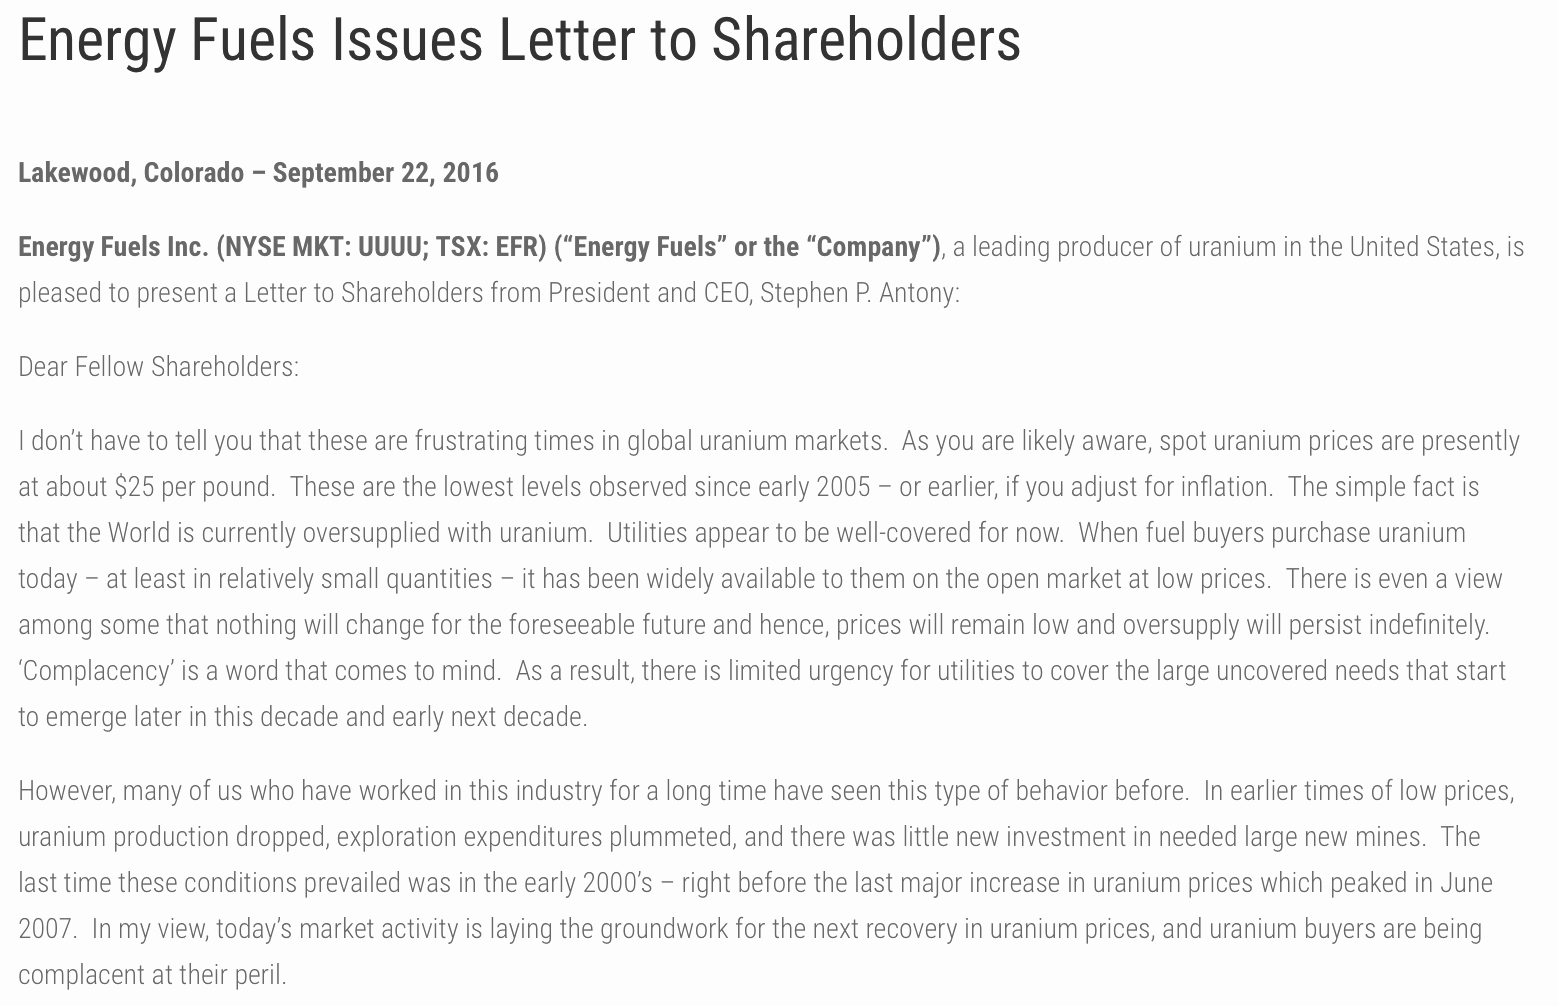 Shareholder Letter Examples Fresh Portfolio Update Adding to My Uranium Position September